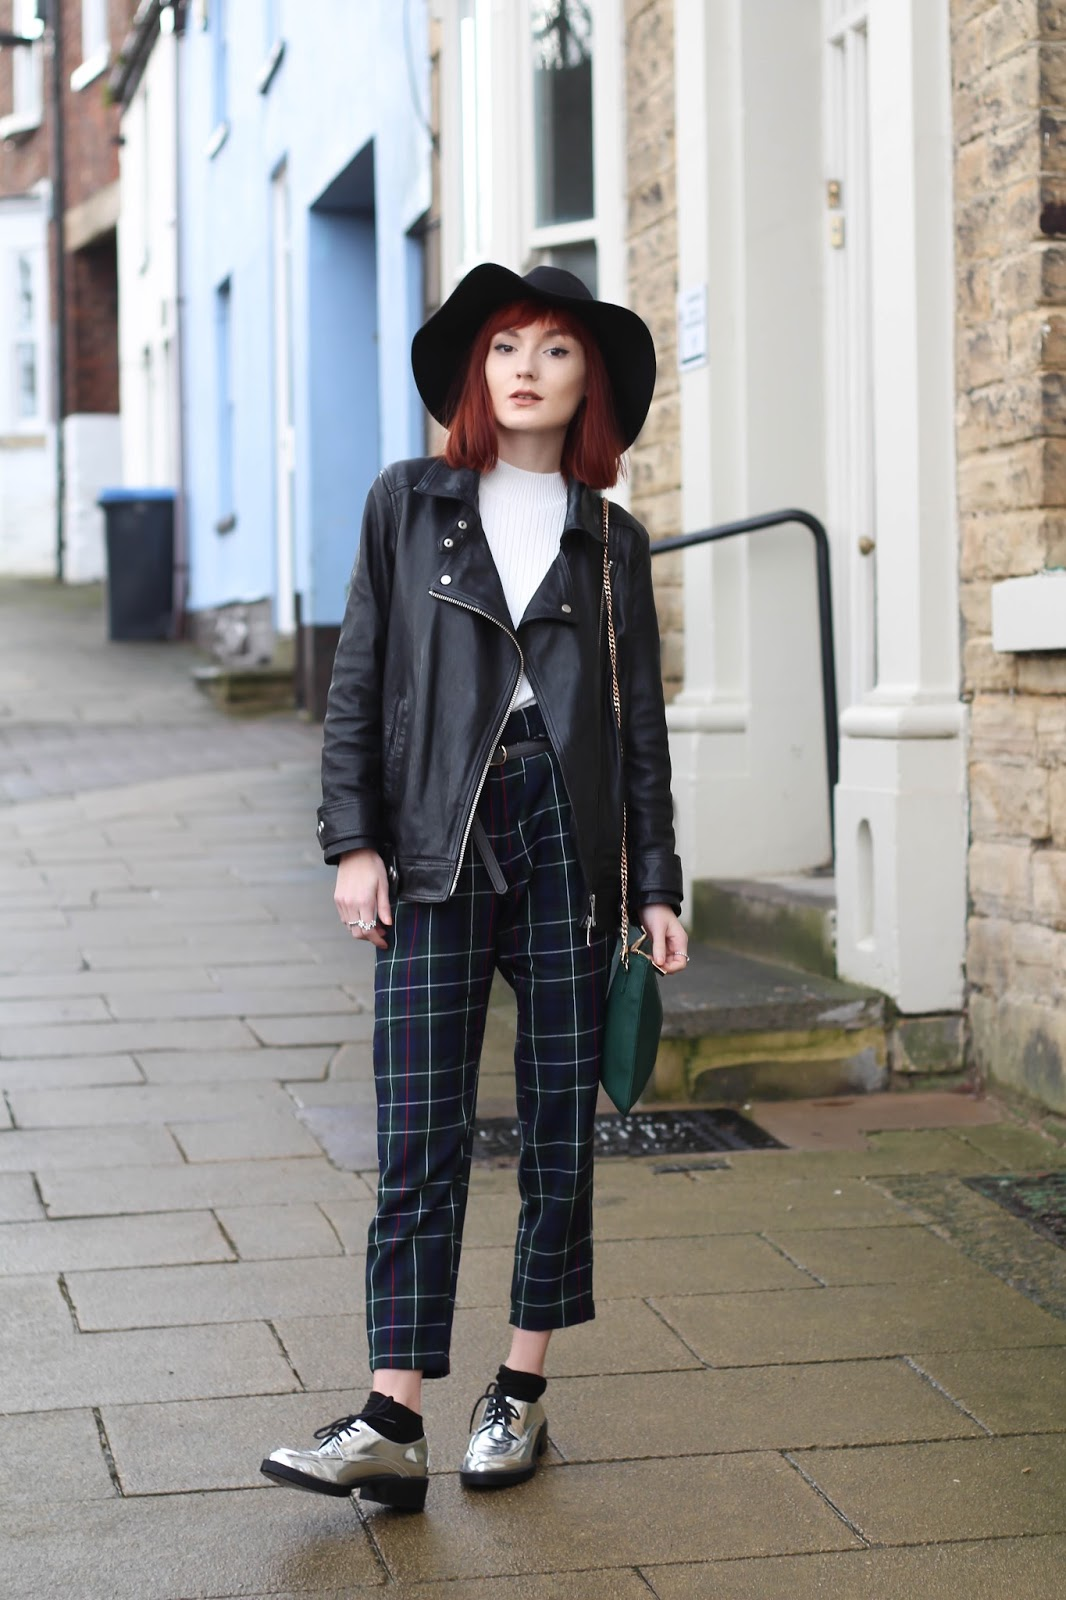 515f73c8 *ALL SAINTS LEATHER JACKET: c/o JOHN LEWIS / FLOPPY HAT, RIBBED WHITE TOP,  *GREEN CROSS BODY BAG (similar): TOPSHOP / GREEN CHECKED TROUSERS: ASOS ...